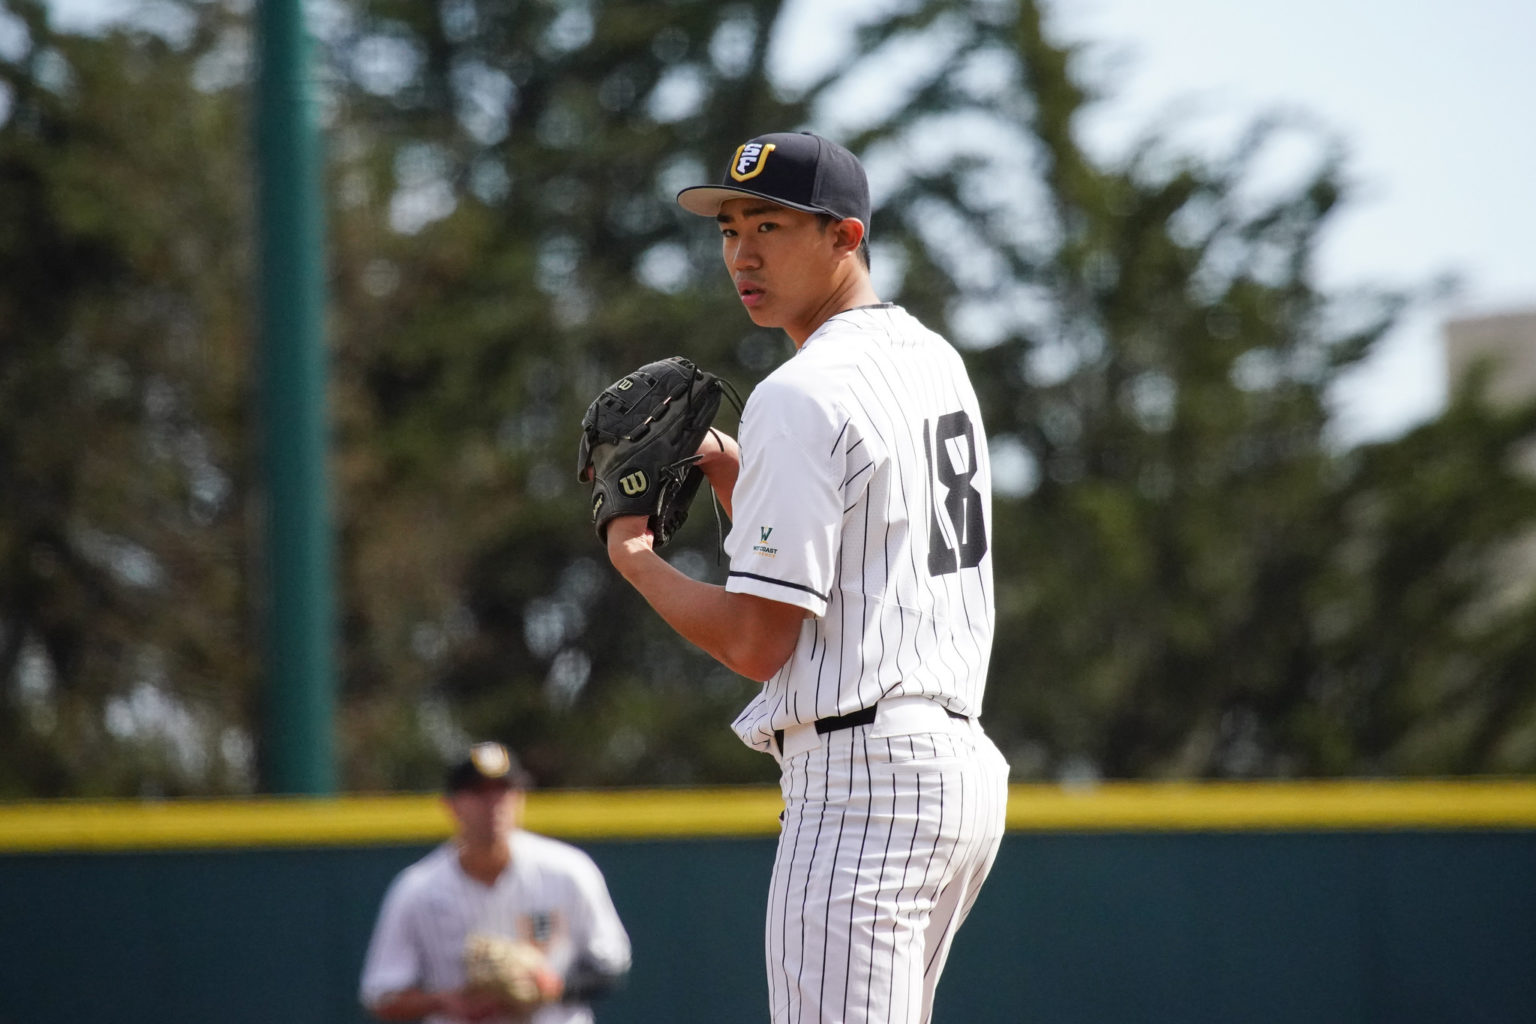 Riley Ornido pitches at Dante Benedetti Diamond early this season. (Courtesy / USF Dons Baseball)